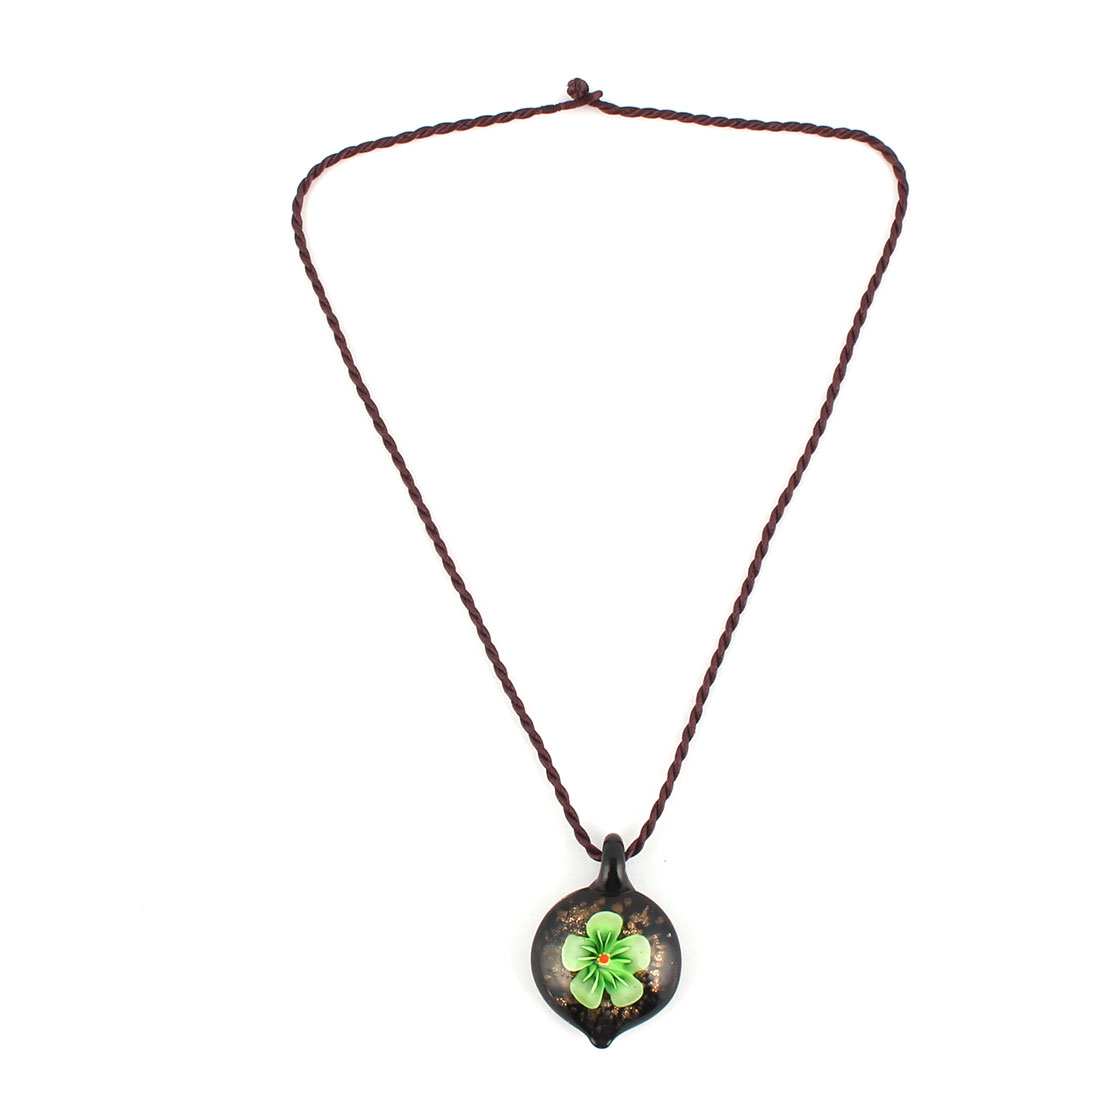 Wedding Outdoor Lady Glass Floral Pattern Pendant Neck Decor Necklet Necklace Green